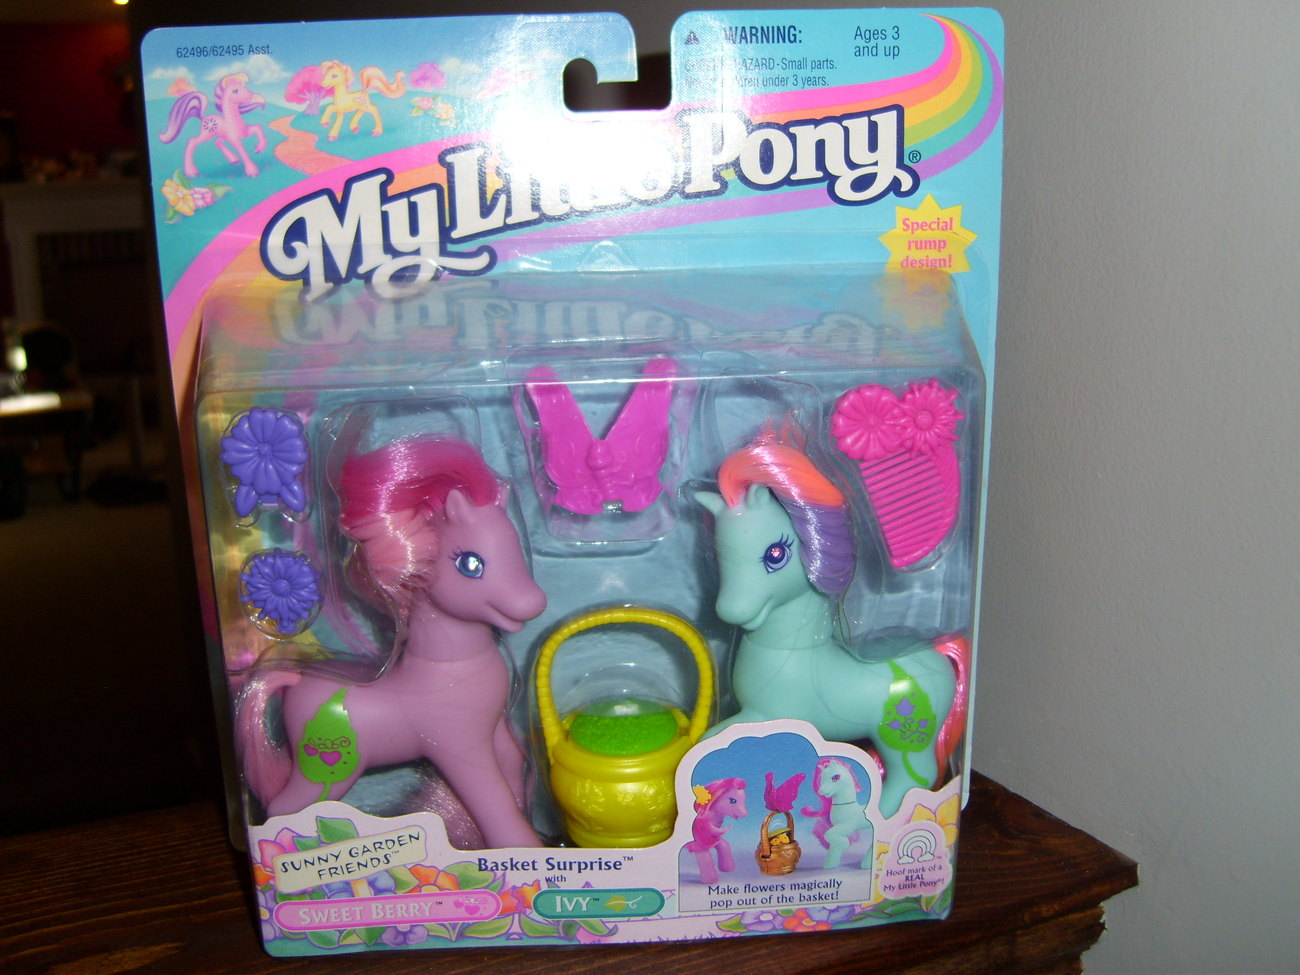 My Little Pony G2 MOC Basket Surprise with Ivy and Sweetberry